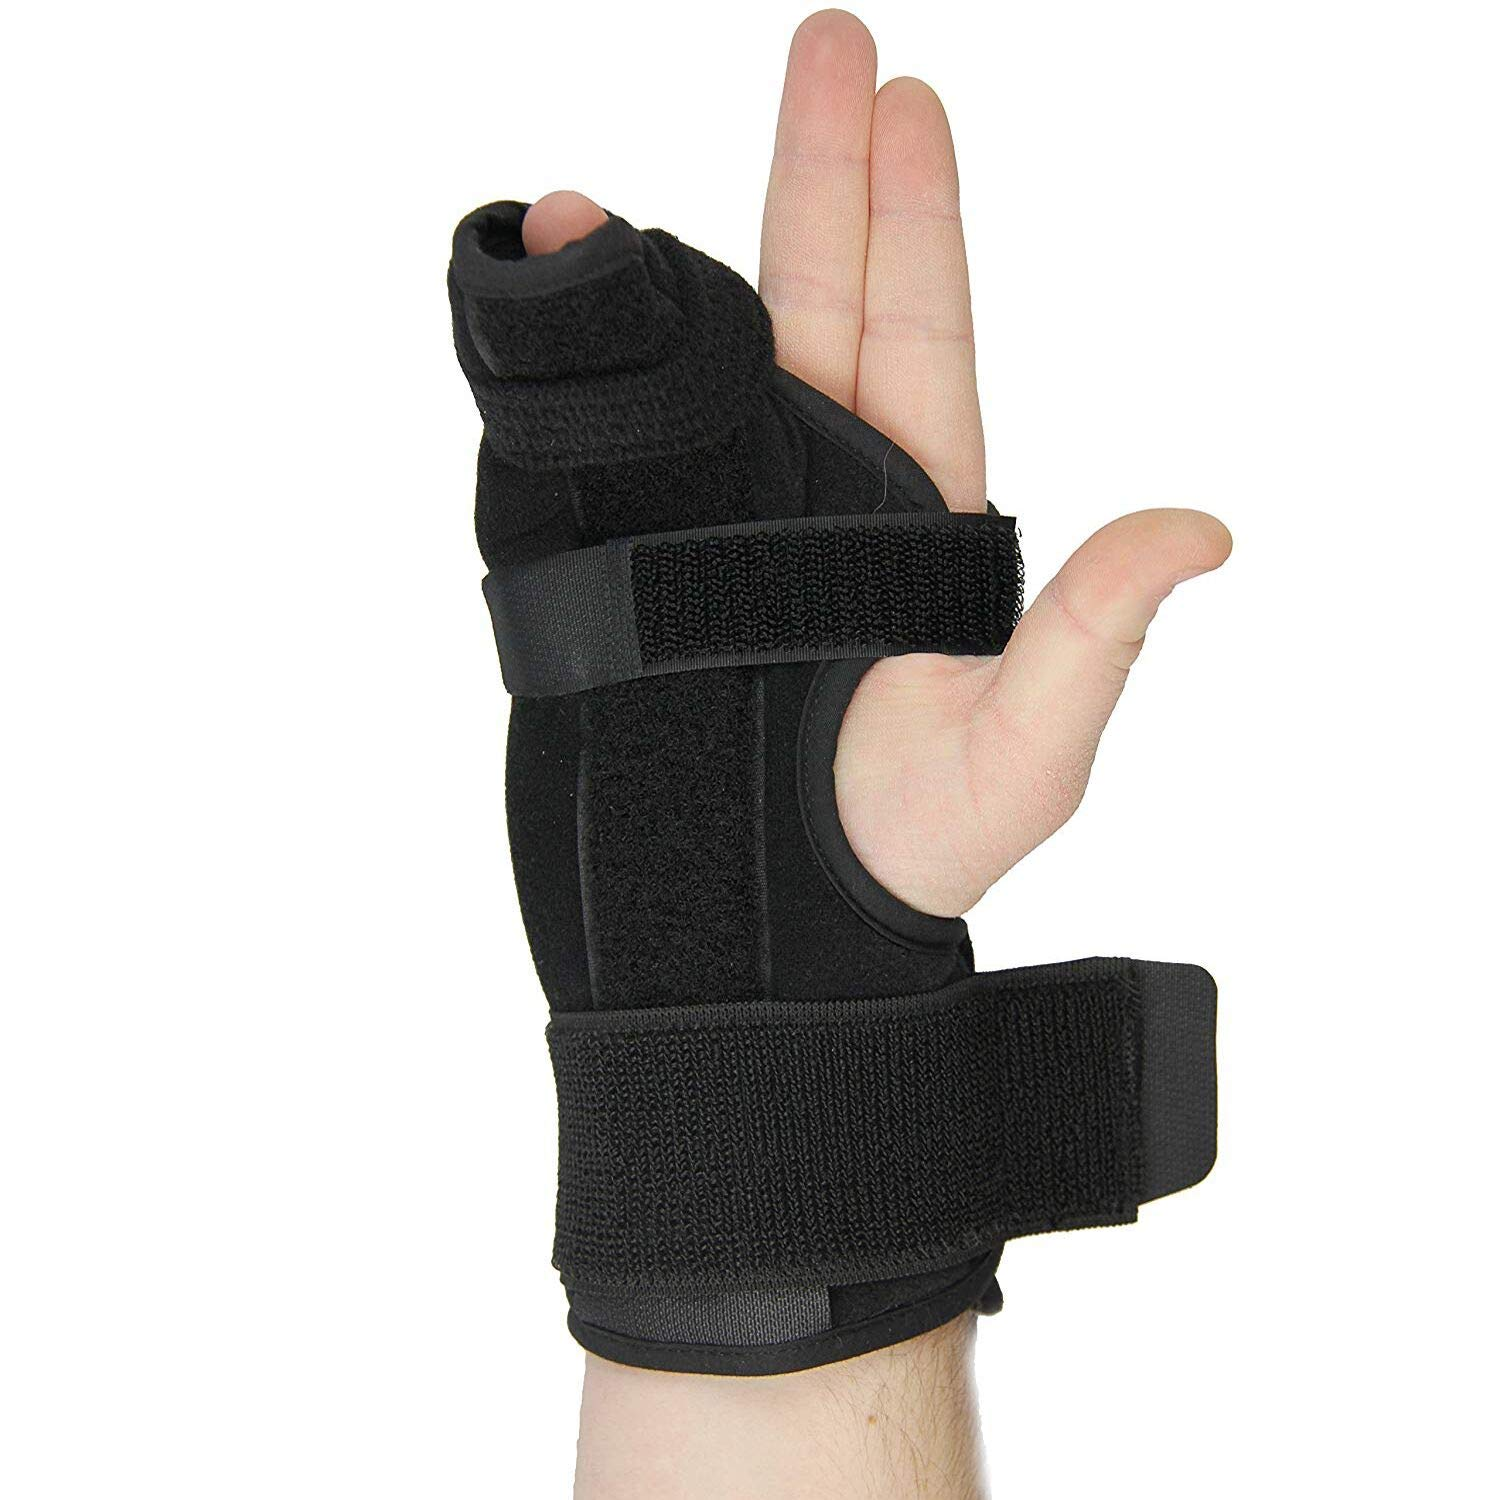 Metacarpal Splint- Boxer Splint for Right Hand, Easy To Put On and Take Off, Stabilizing Splint for Metacarpal and Hand Injuries, a U.S. Solid Product (Medium) by U.S. Solid